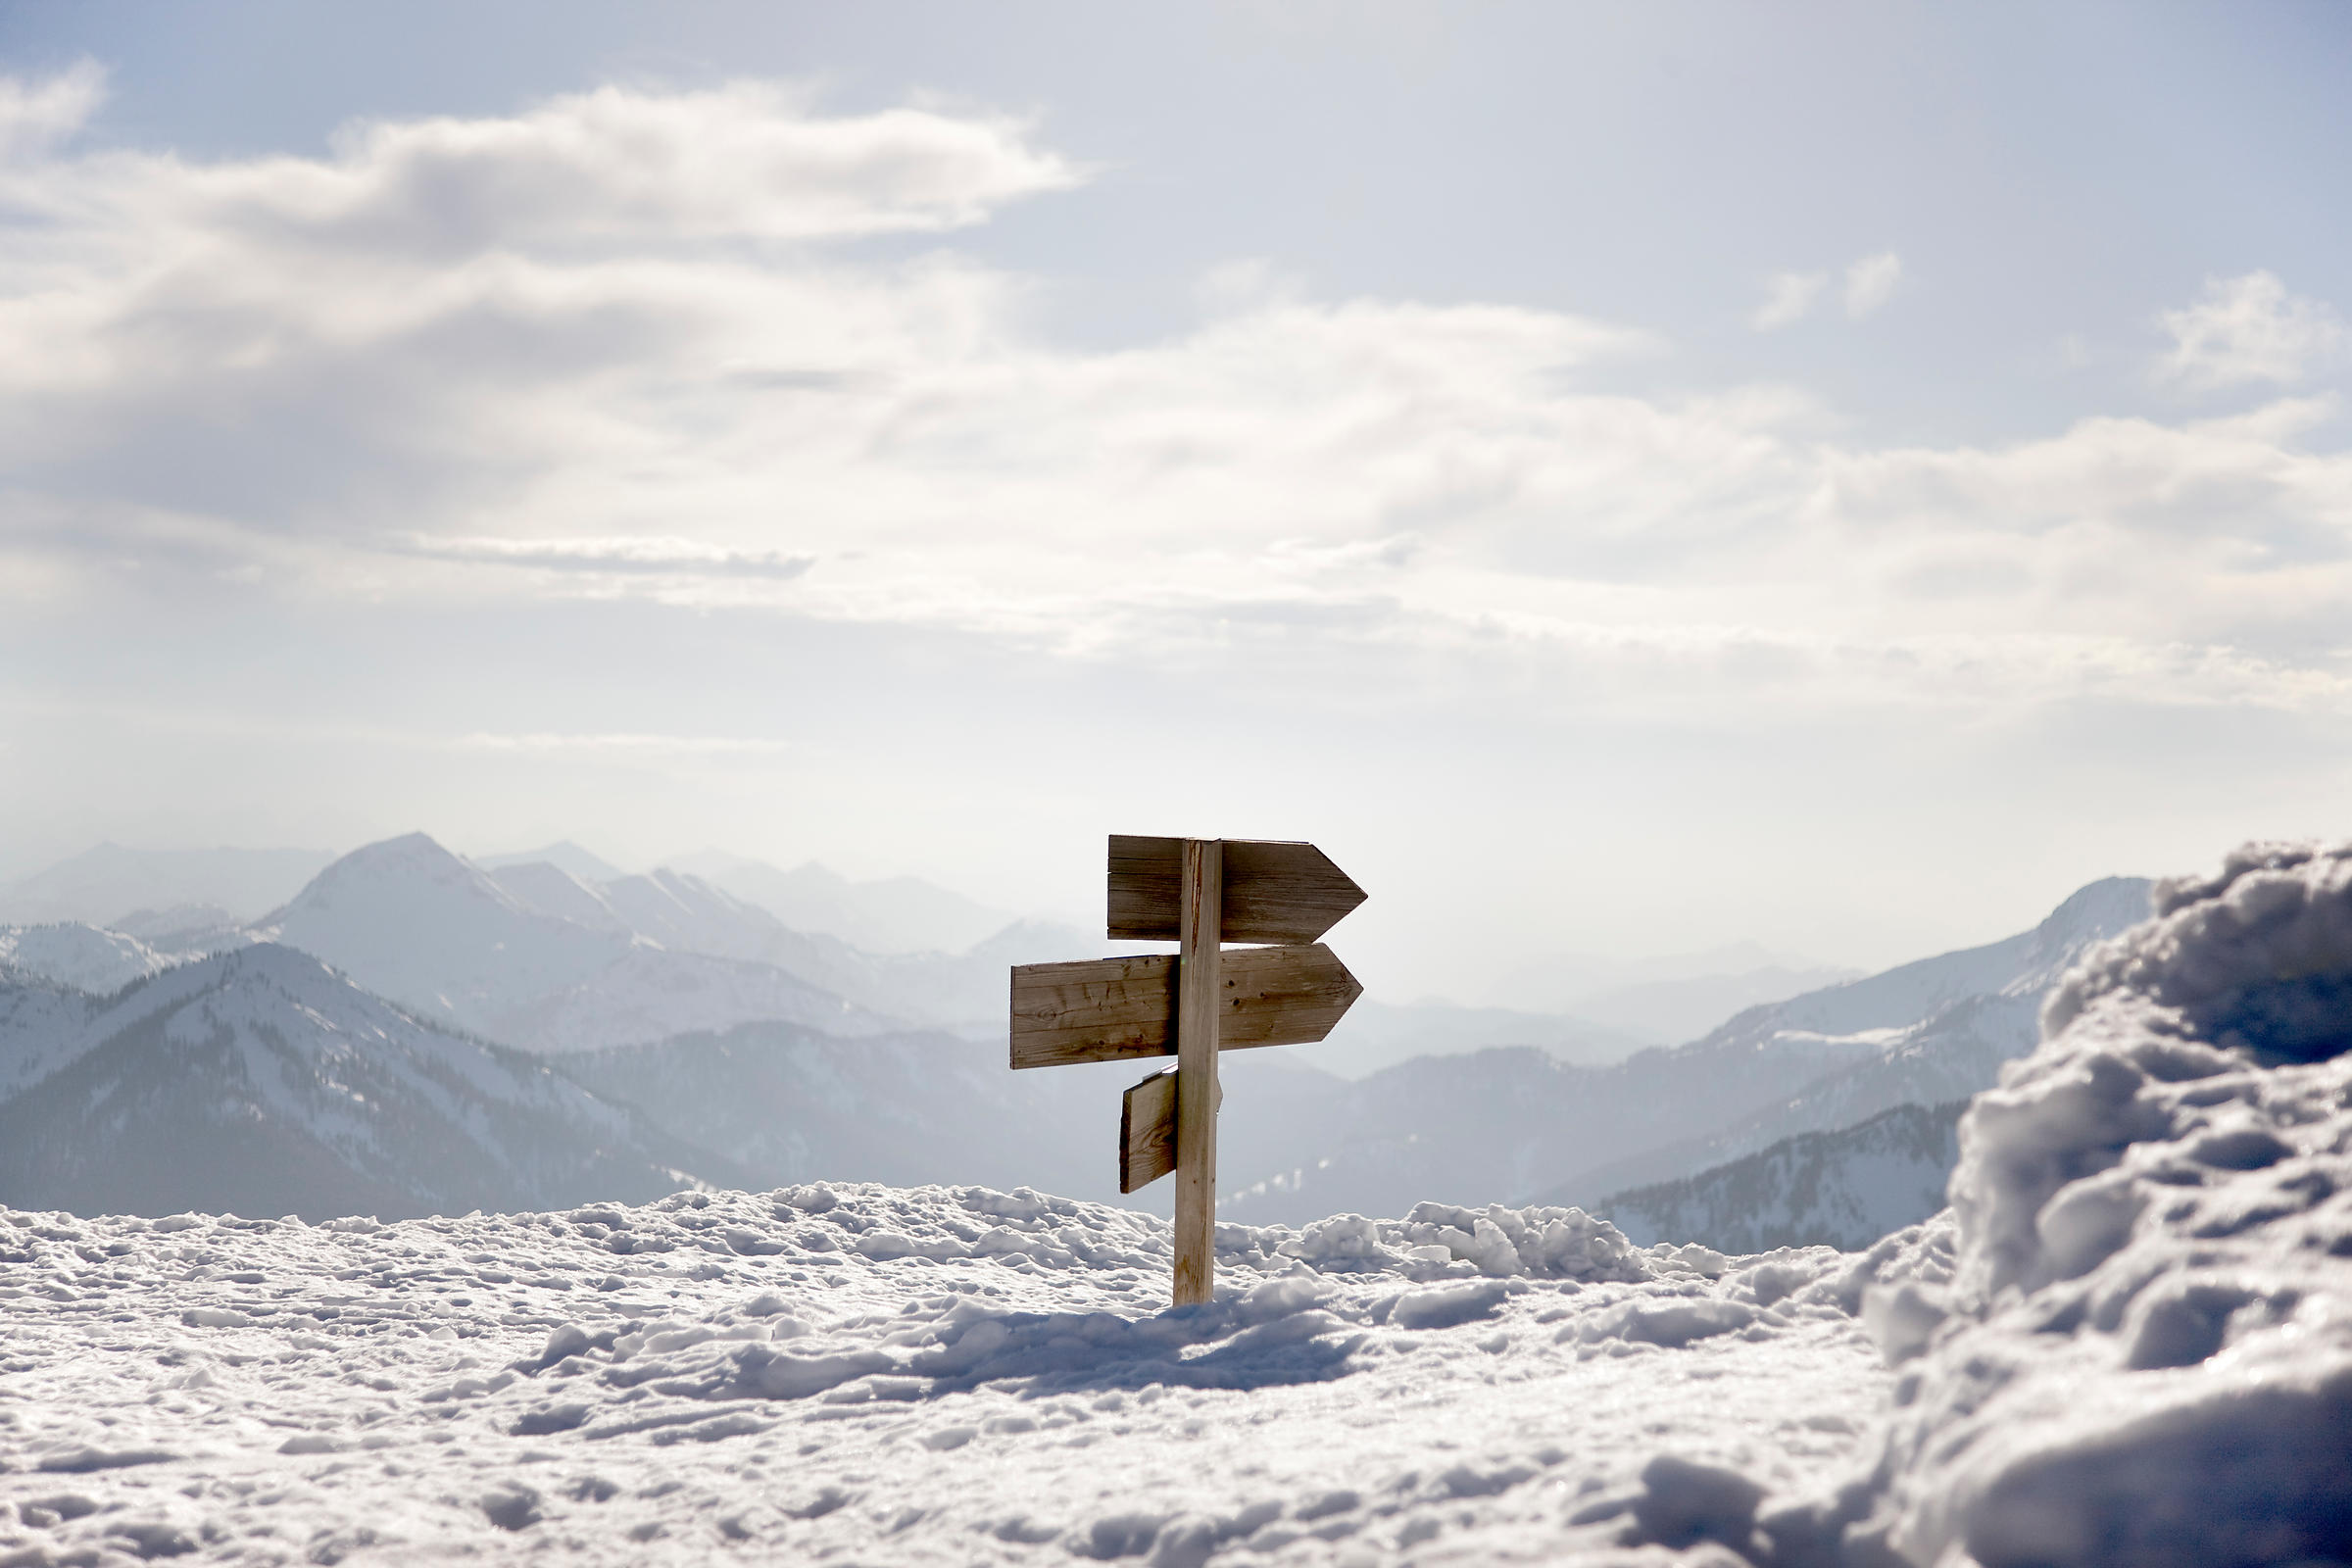 snow covered mountains, way sign